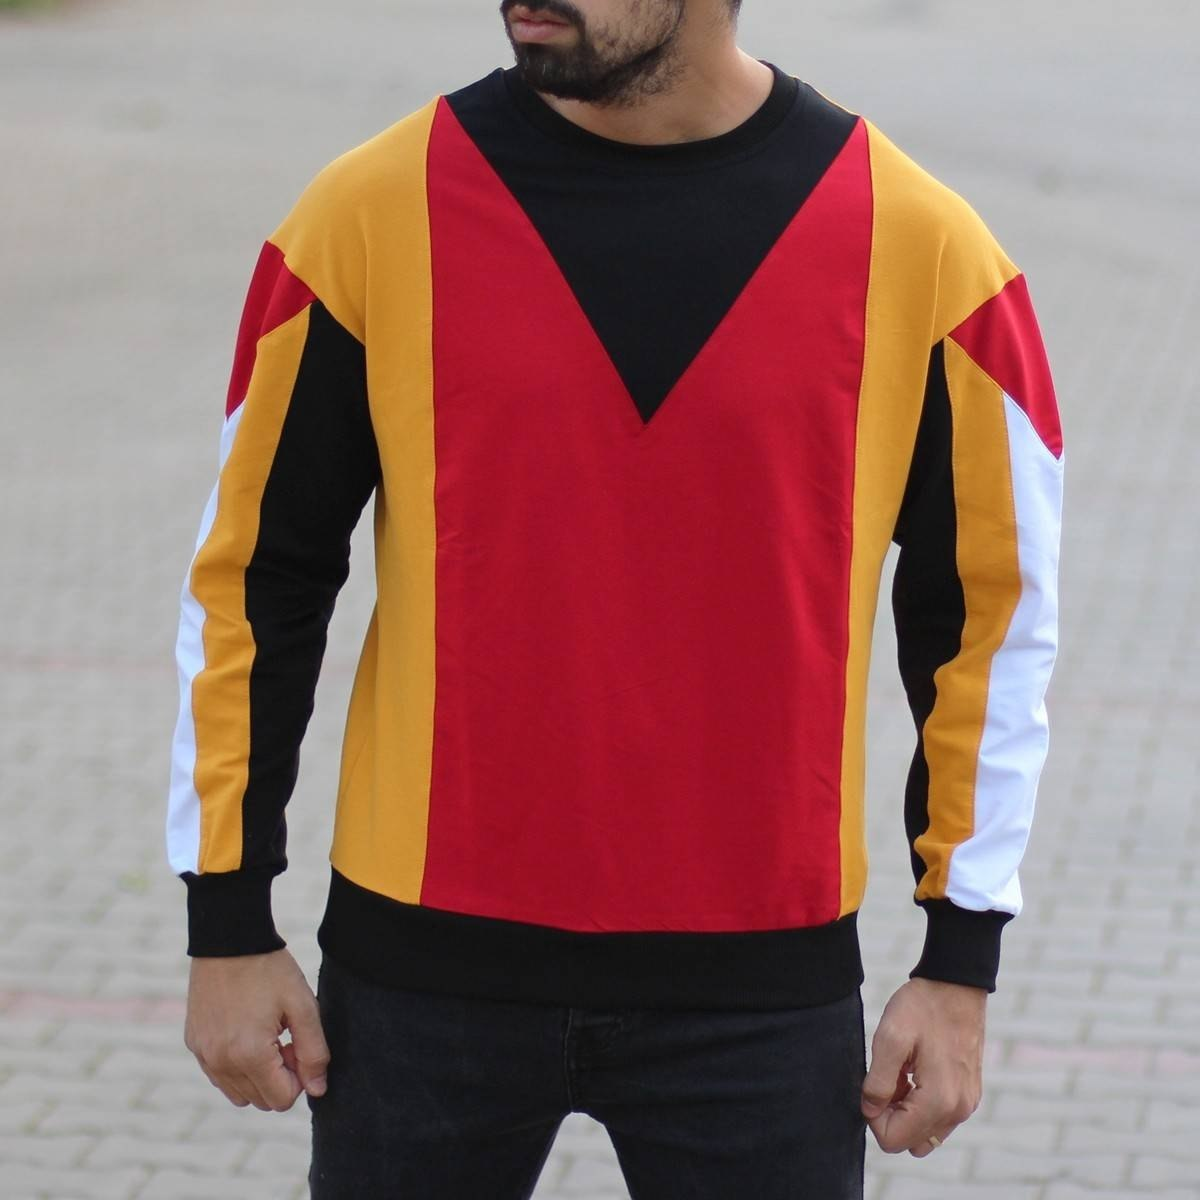 Men's Geometric Sweatshirt...